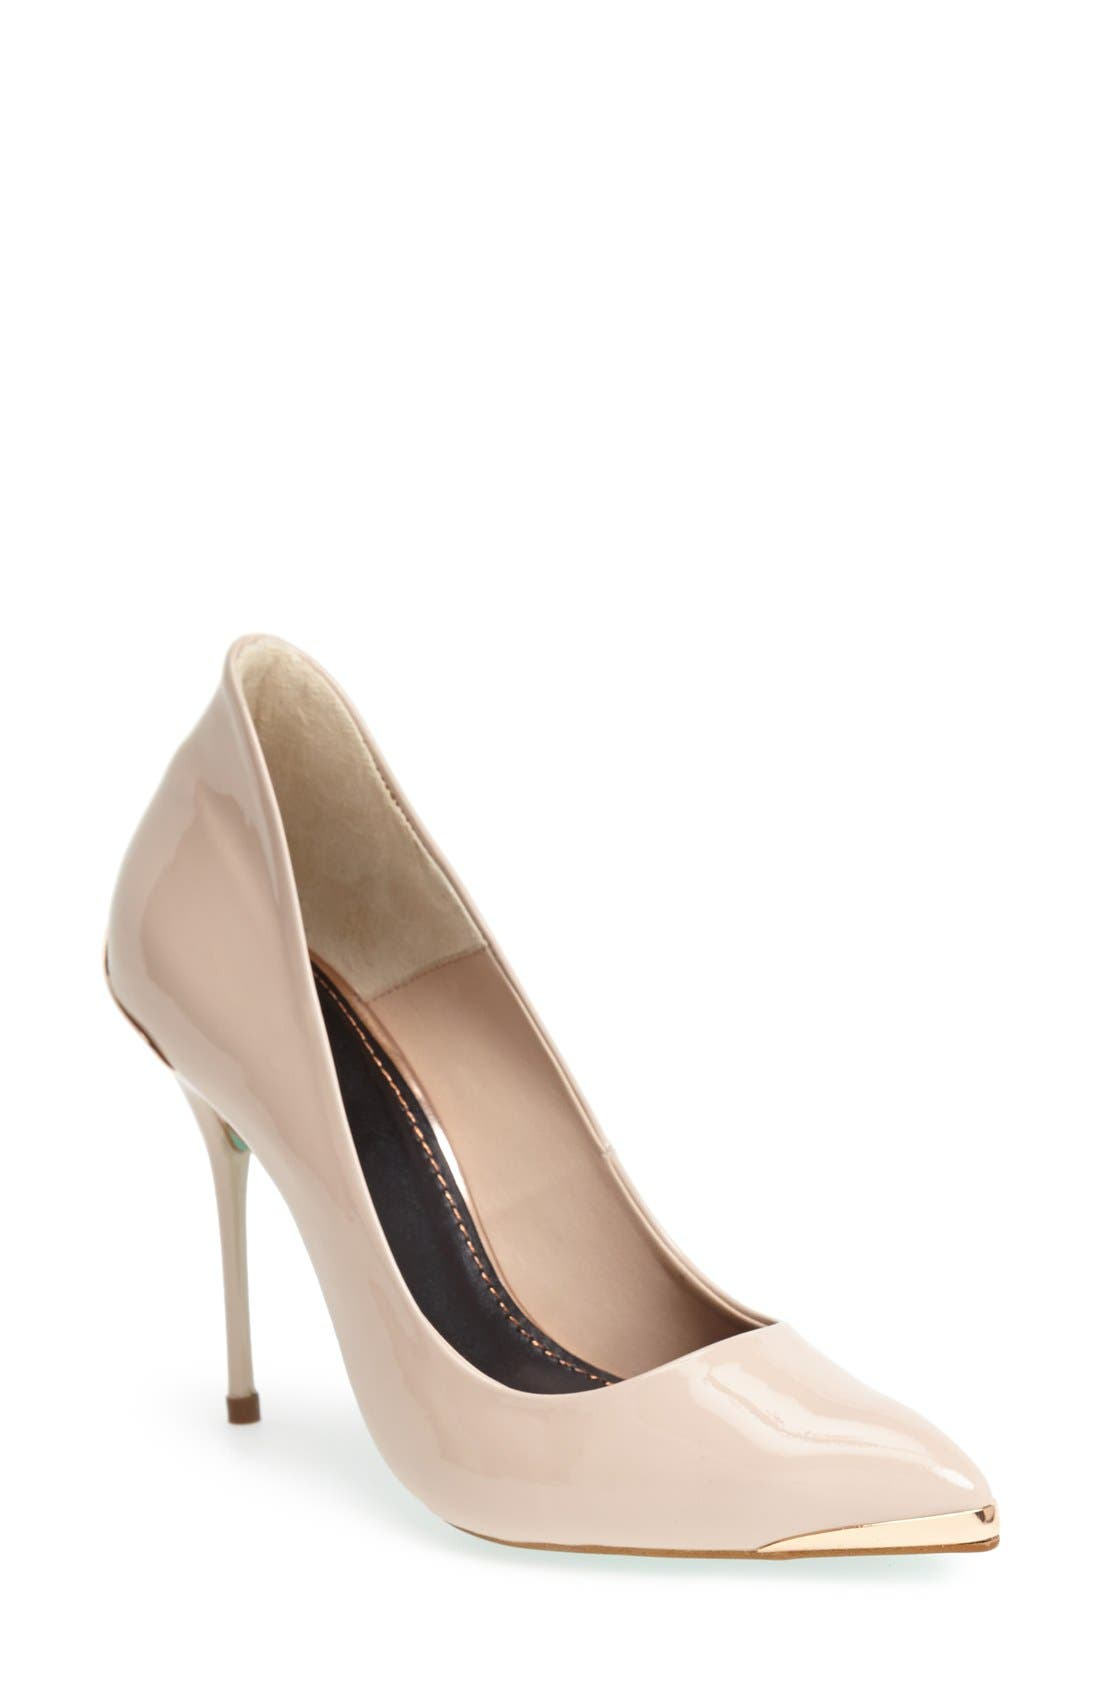 Main Image - Topshop by CJG 'High Pitch' Patent Leather Pump (Women)